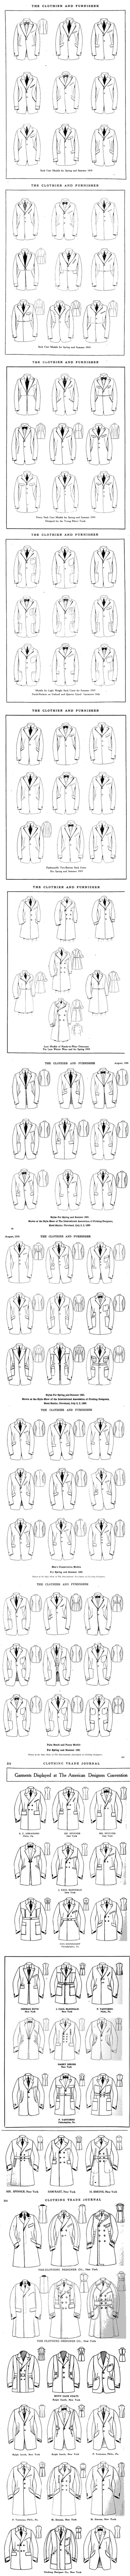 The 1920 JAZZ SUIT - Page 13